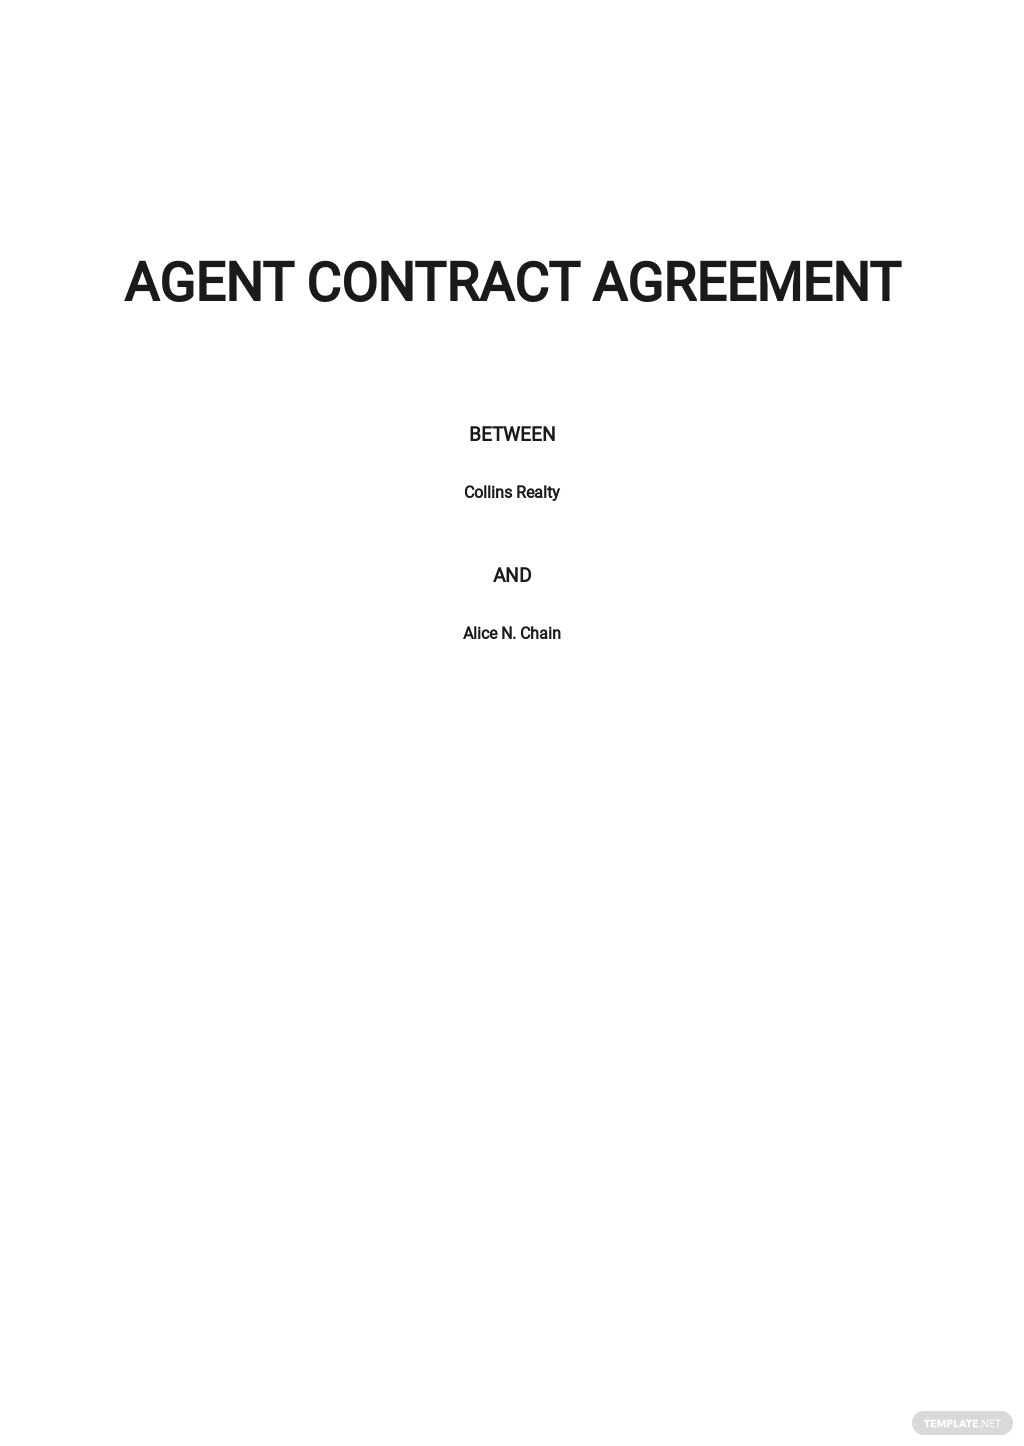 Agent Contract Agreement Template .jpe